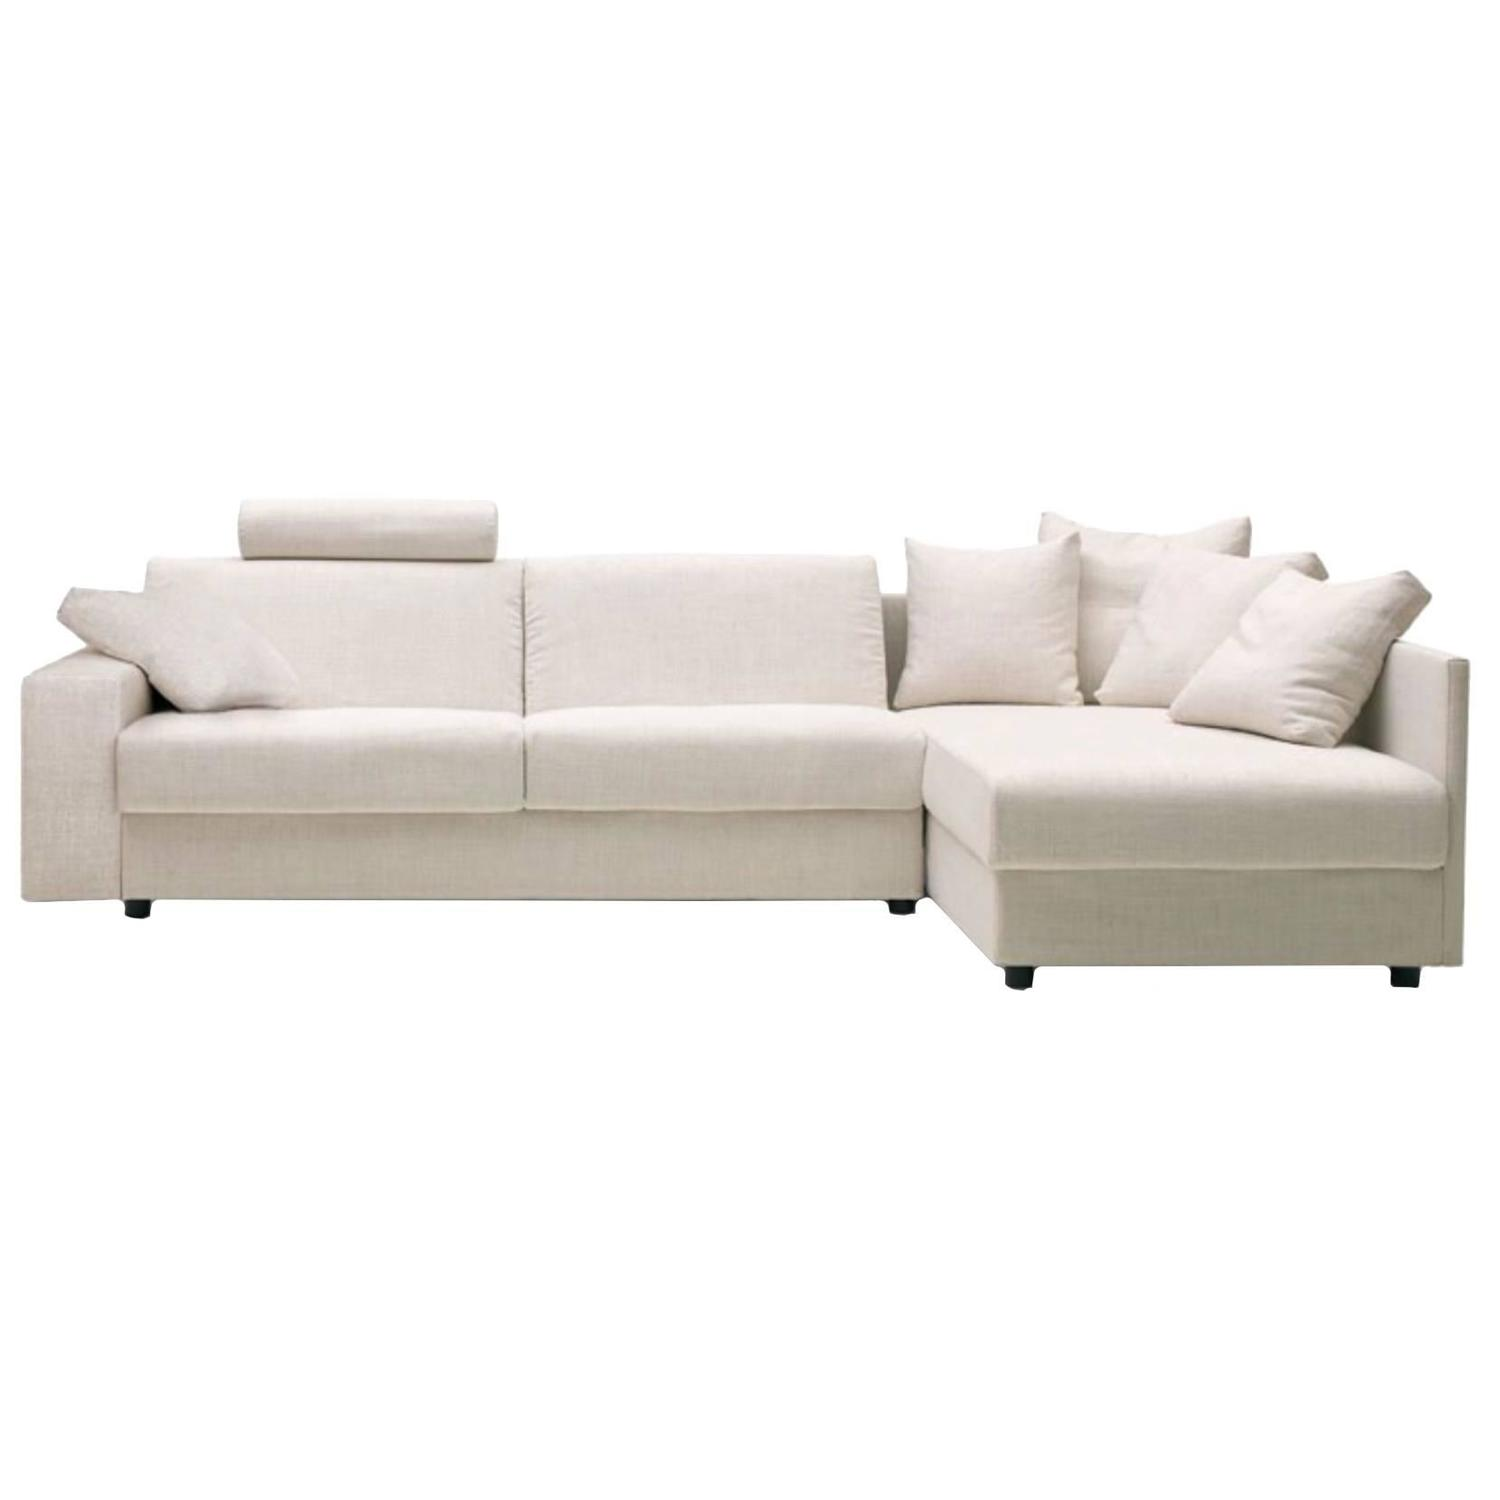 Best Modular Leather Sofa 16 On Modern Sofa Inspiration with Modular Leather Sofa